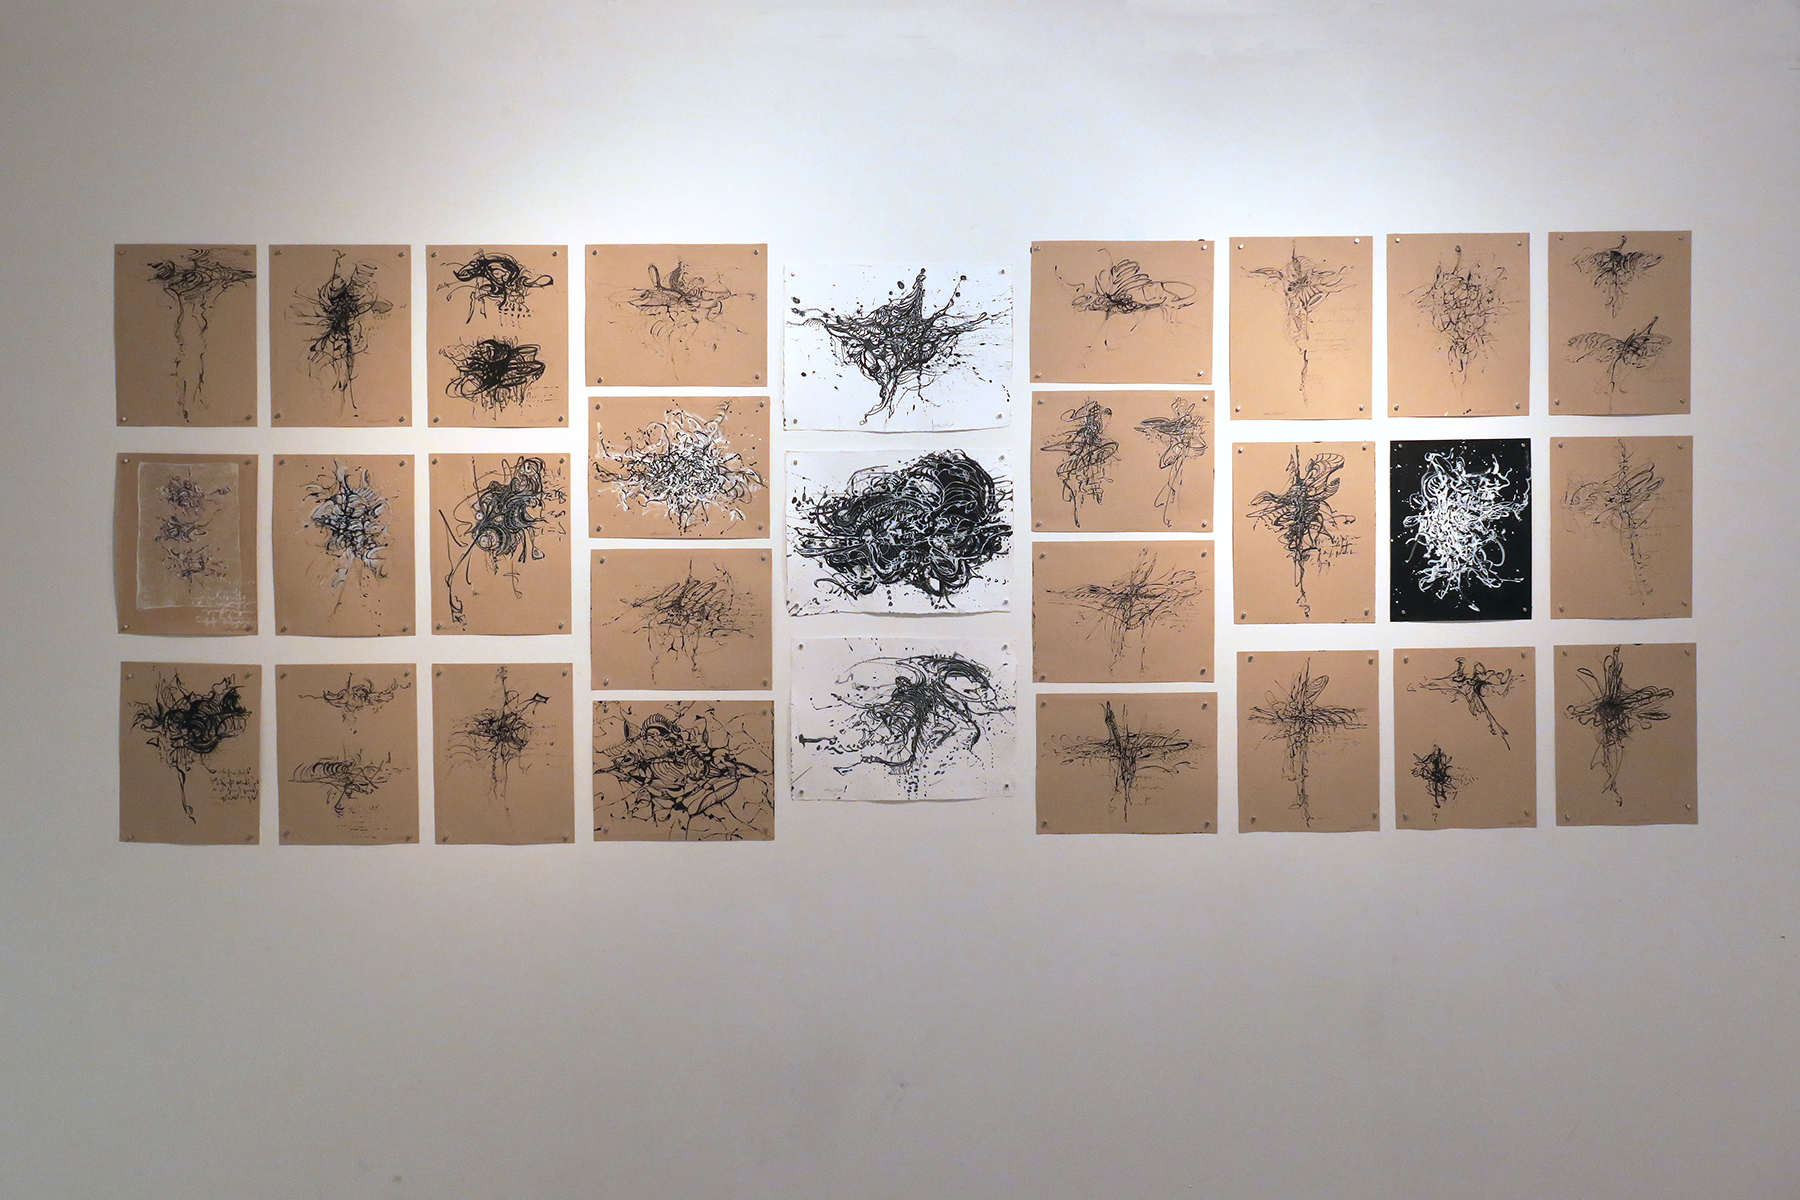 Kathryn Hart, Daunting Transitions Solo Show, Grid of 30 Ink Drawings, Krakow 2018